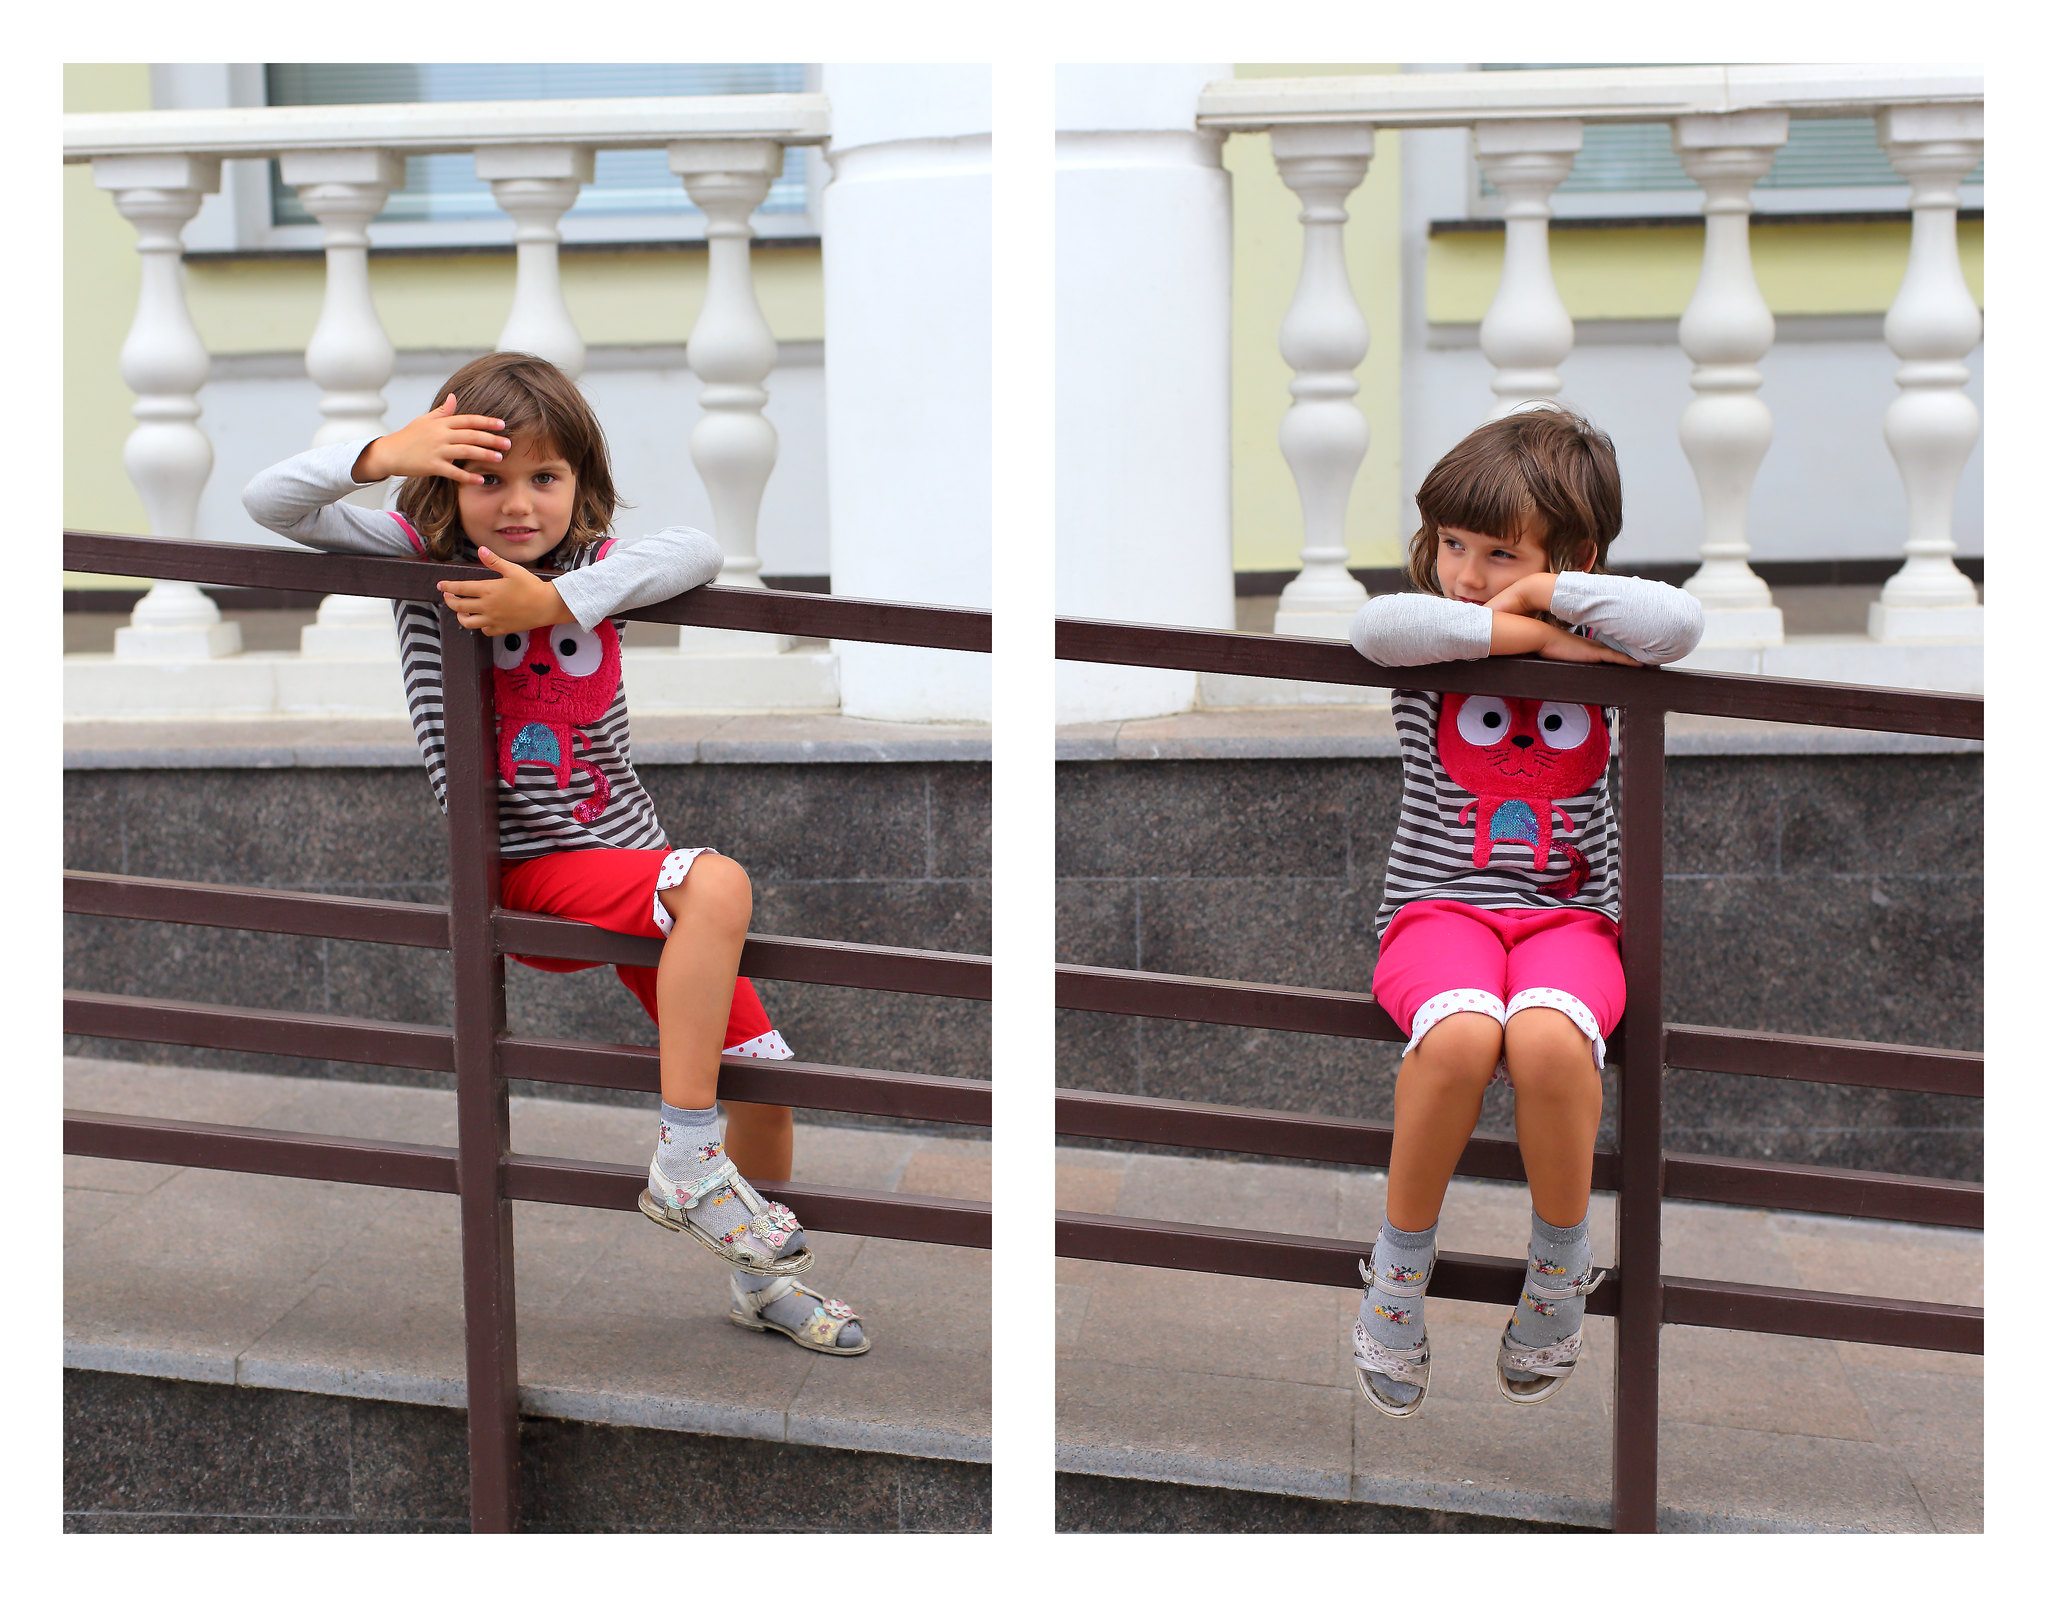 Twins posing for a picture on a railing.